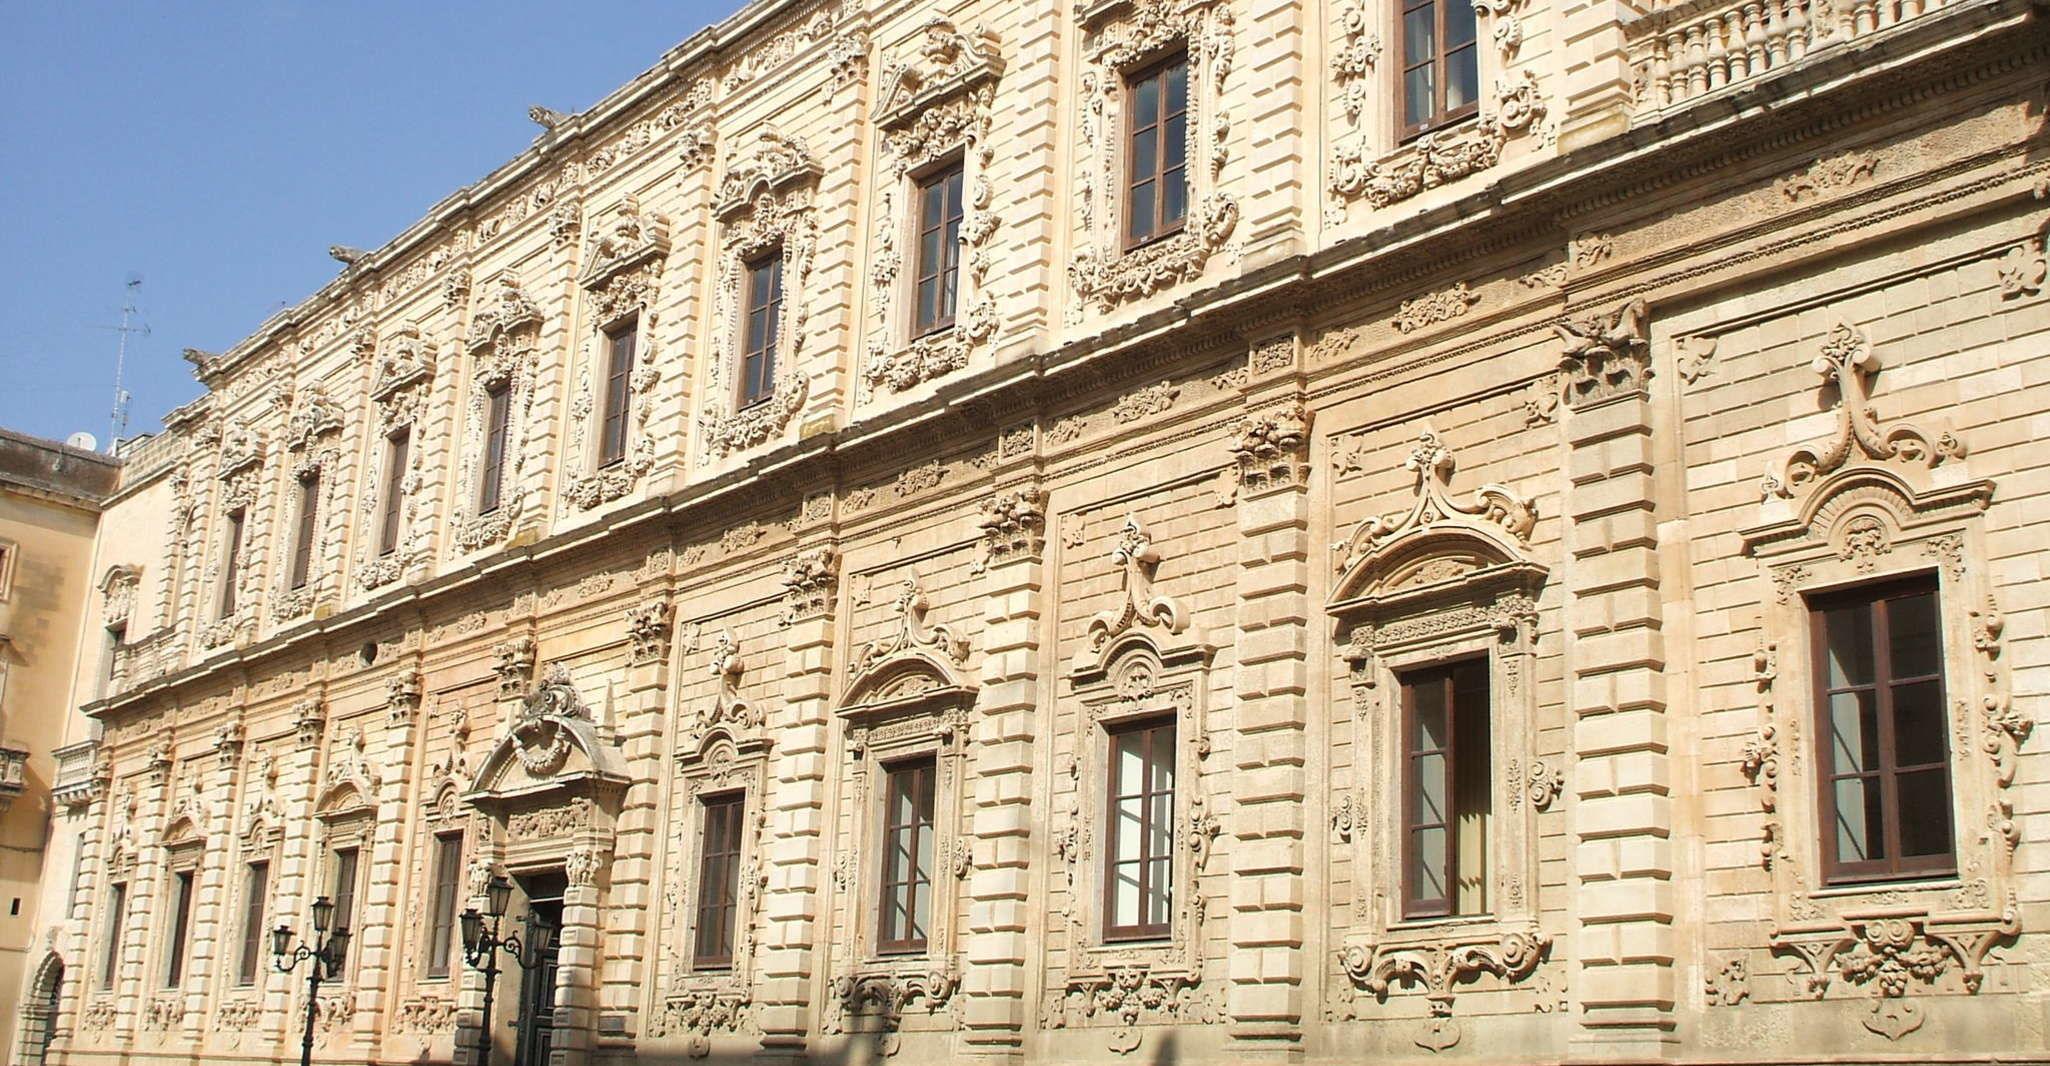 Lecce: Sightseeing Tour, the Florence of South Italy